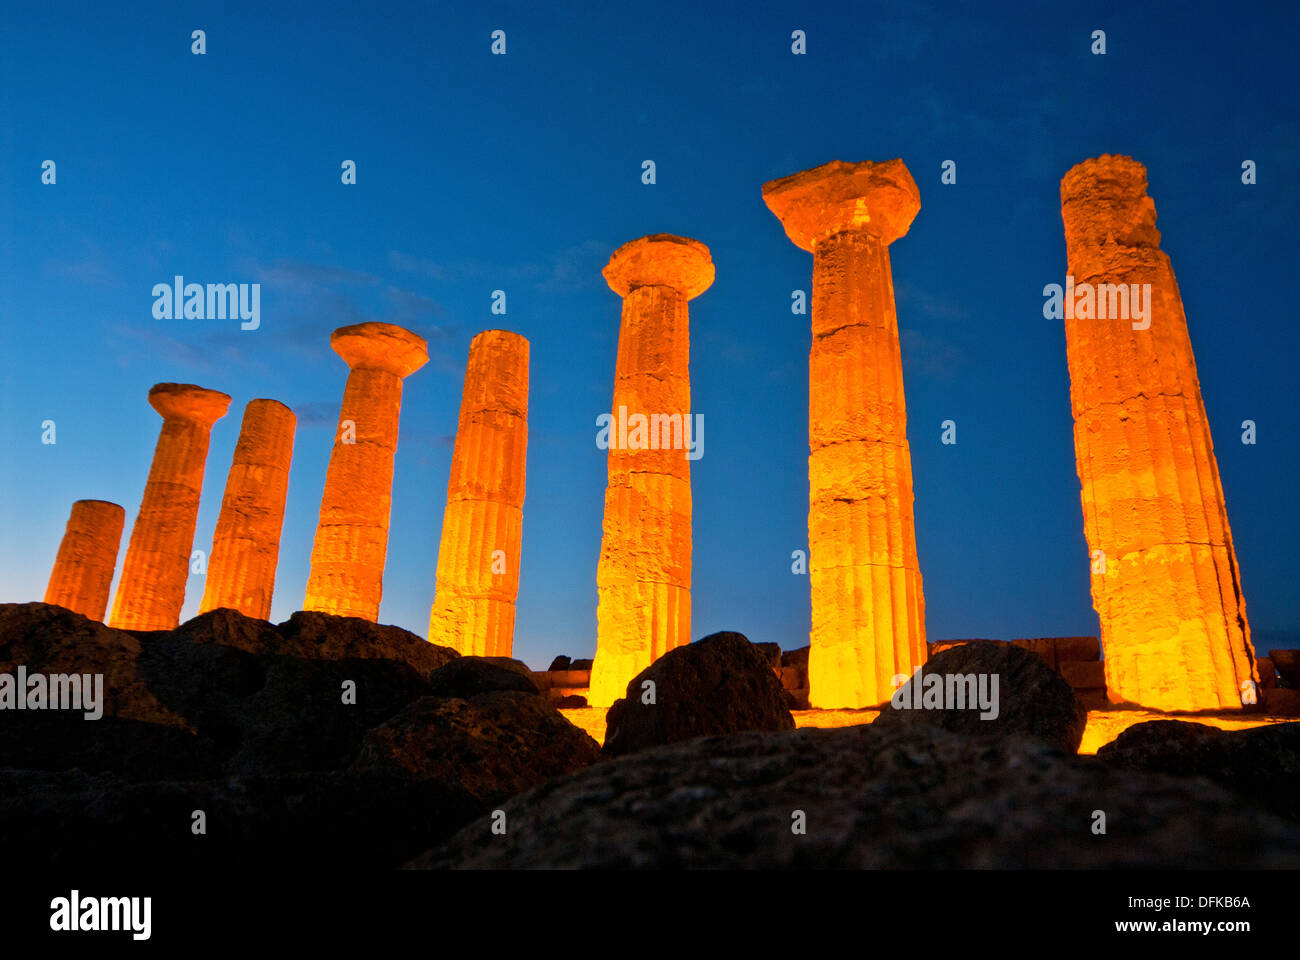 Agrigento Old columns, Valley of the kings, Sicily, Italy - Stock Image